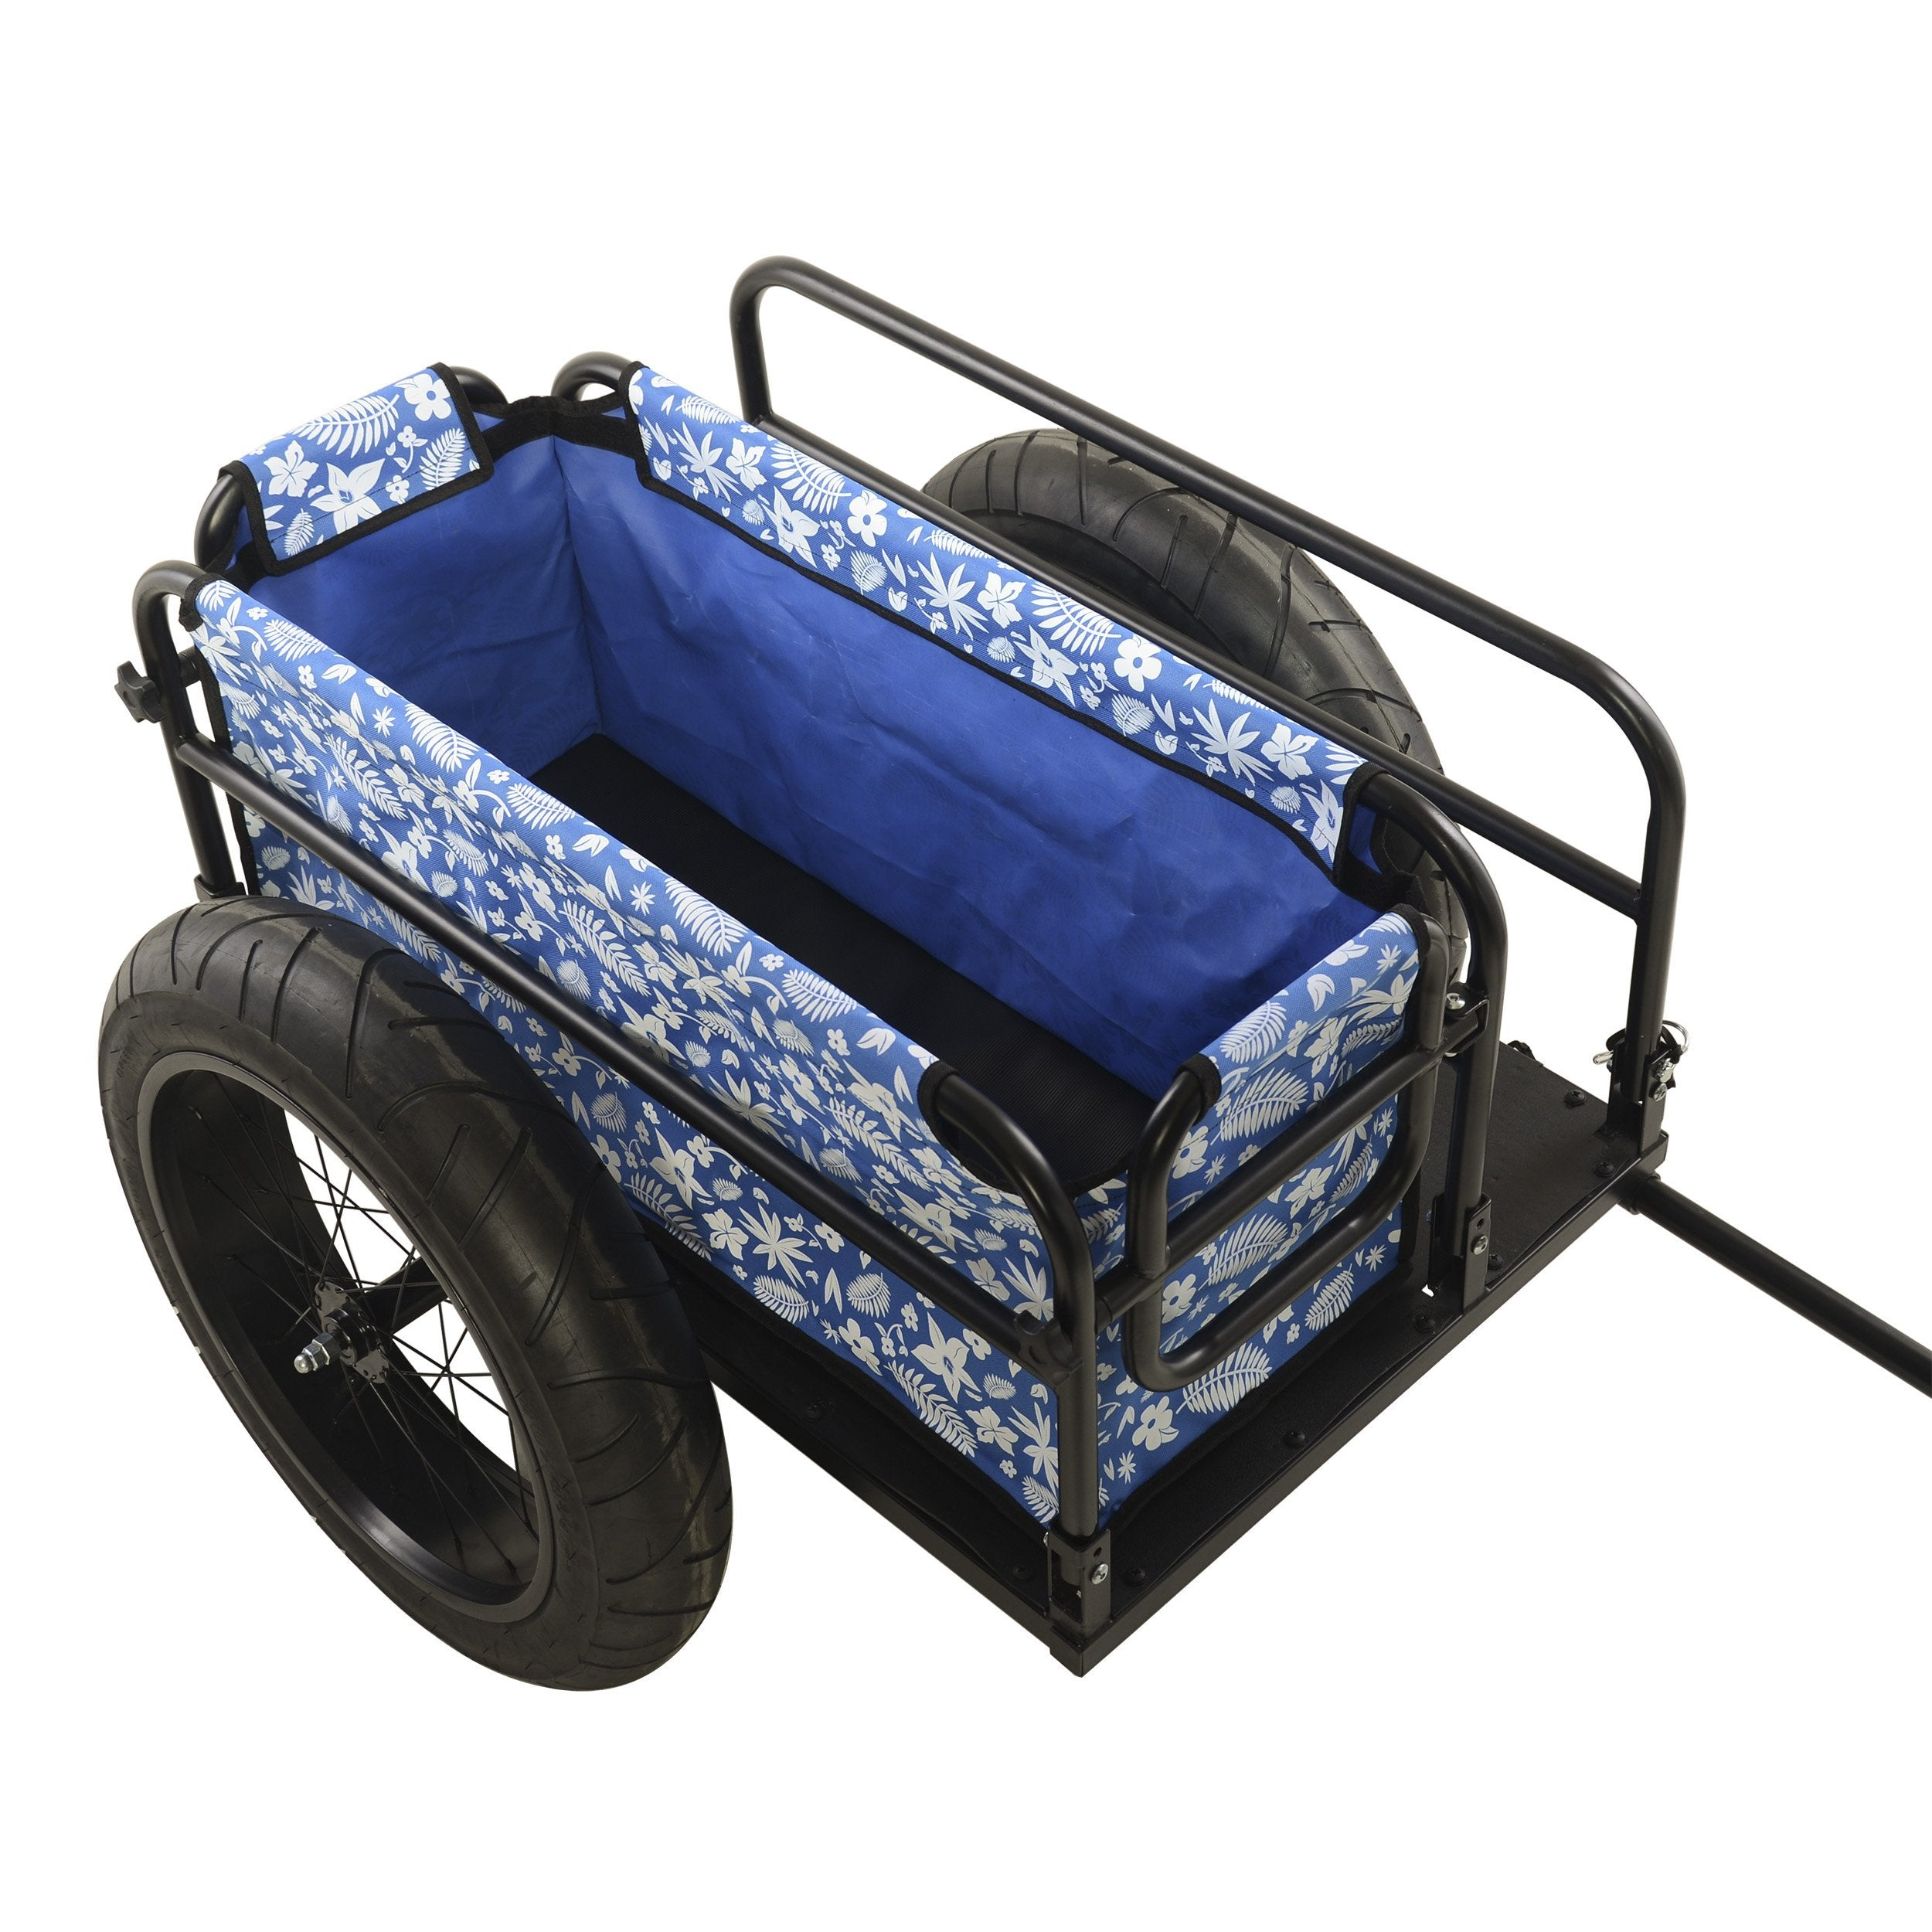 Cycle Force EV Two-Wheel Bicycle Cargo & Surf Board Trailer - Trailer Blue Ridetique.com